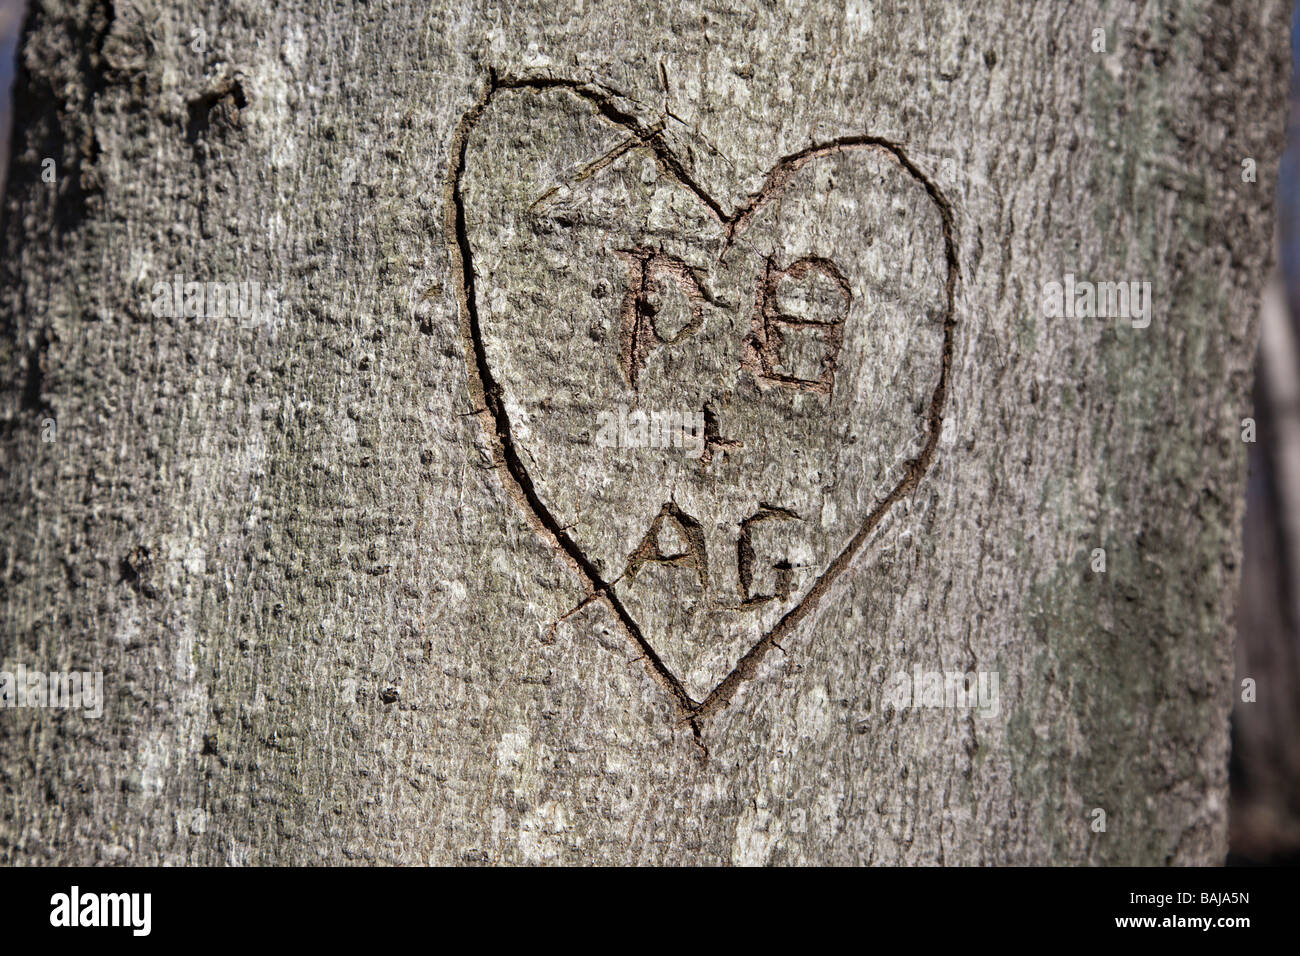 Initials Carved On Tree Stock Photos Initials Carved On Tree Stock